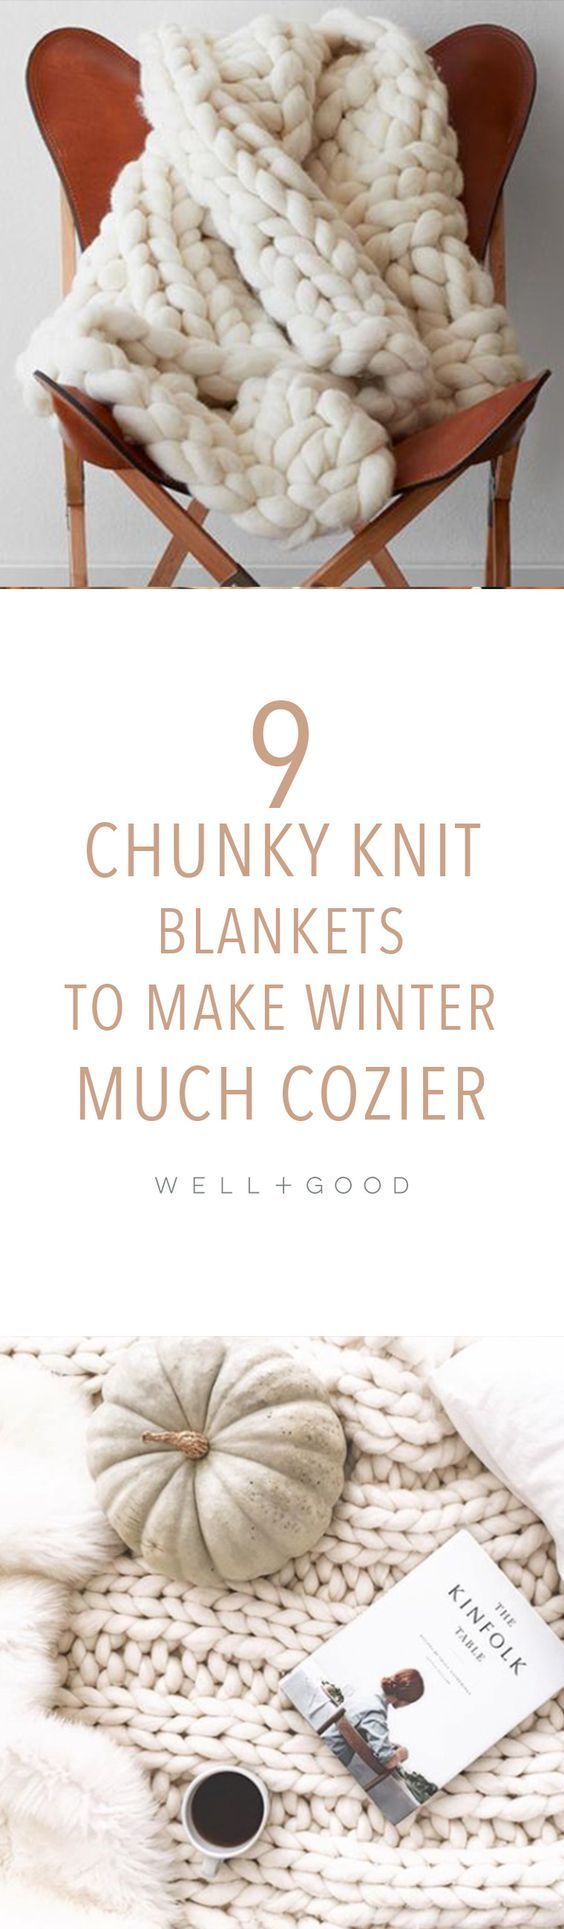 9 cozy & comfy blankets perfect for winter.